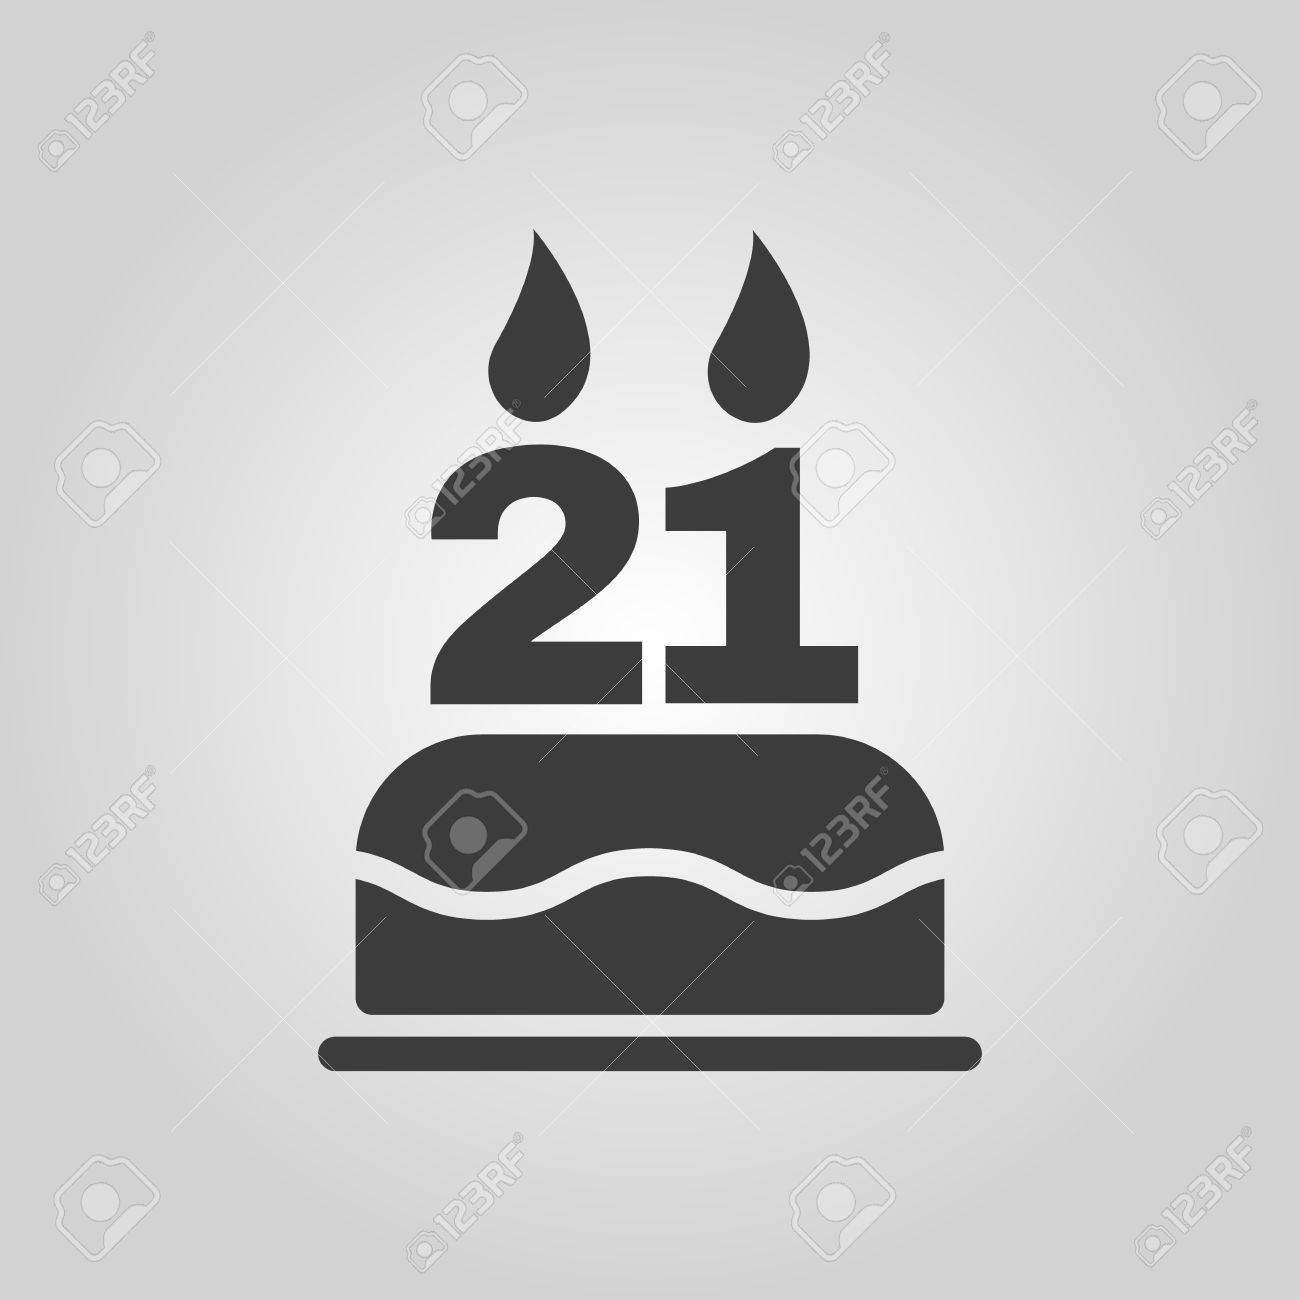 The birthday cake with candles in the form of number 21 icon the birthday cake with candles in the form of number 21 icon birthday symbol buycottarizona